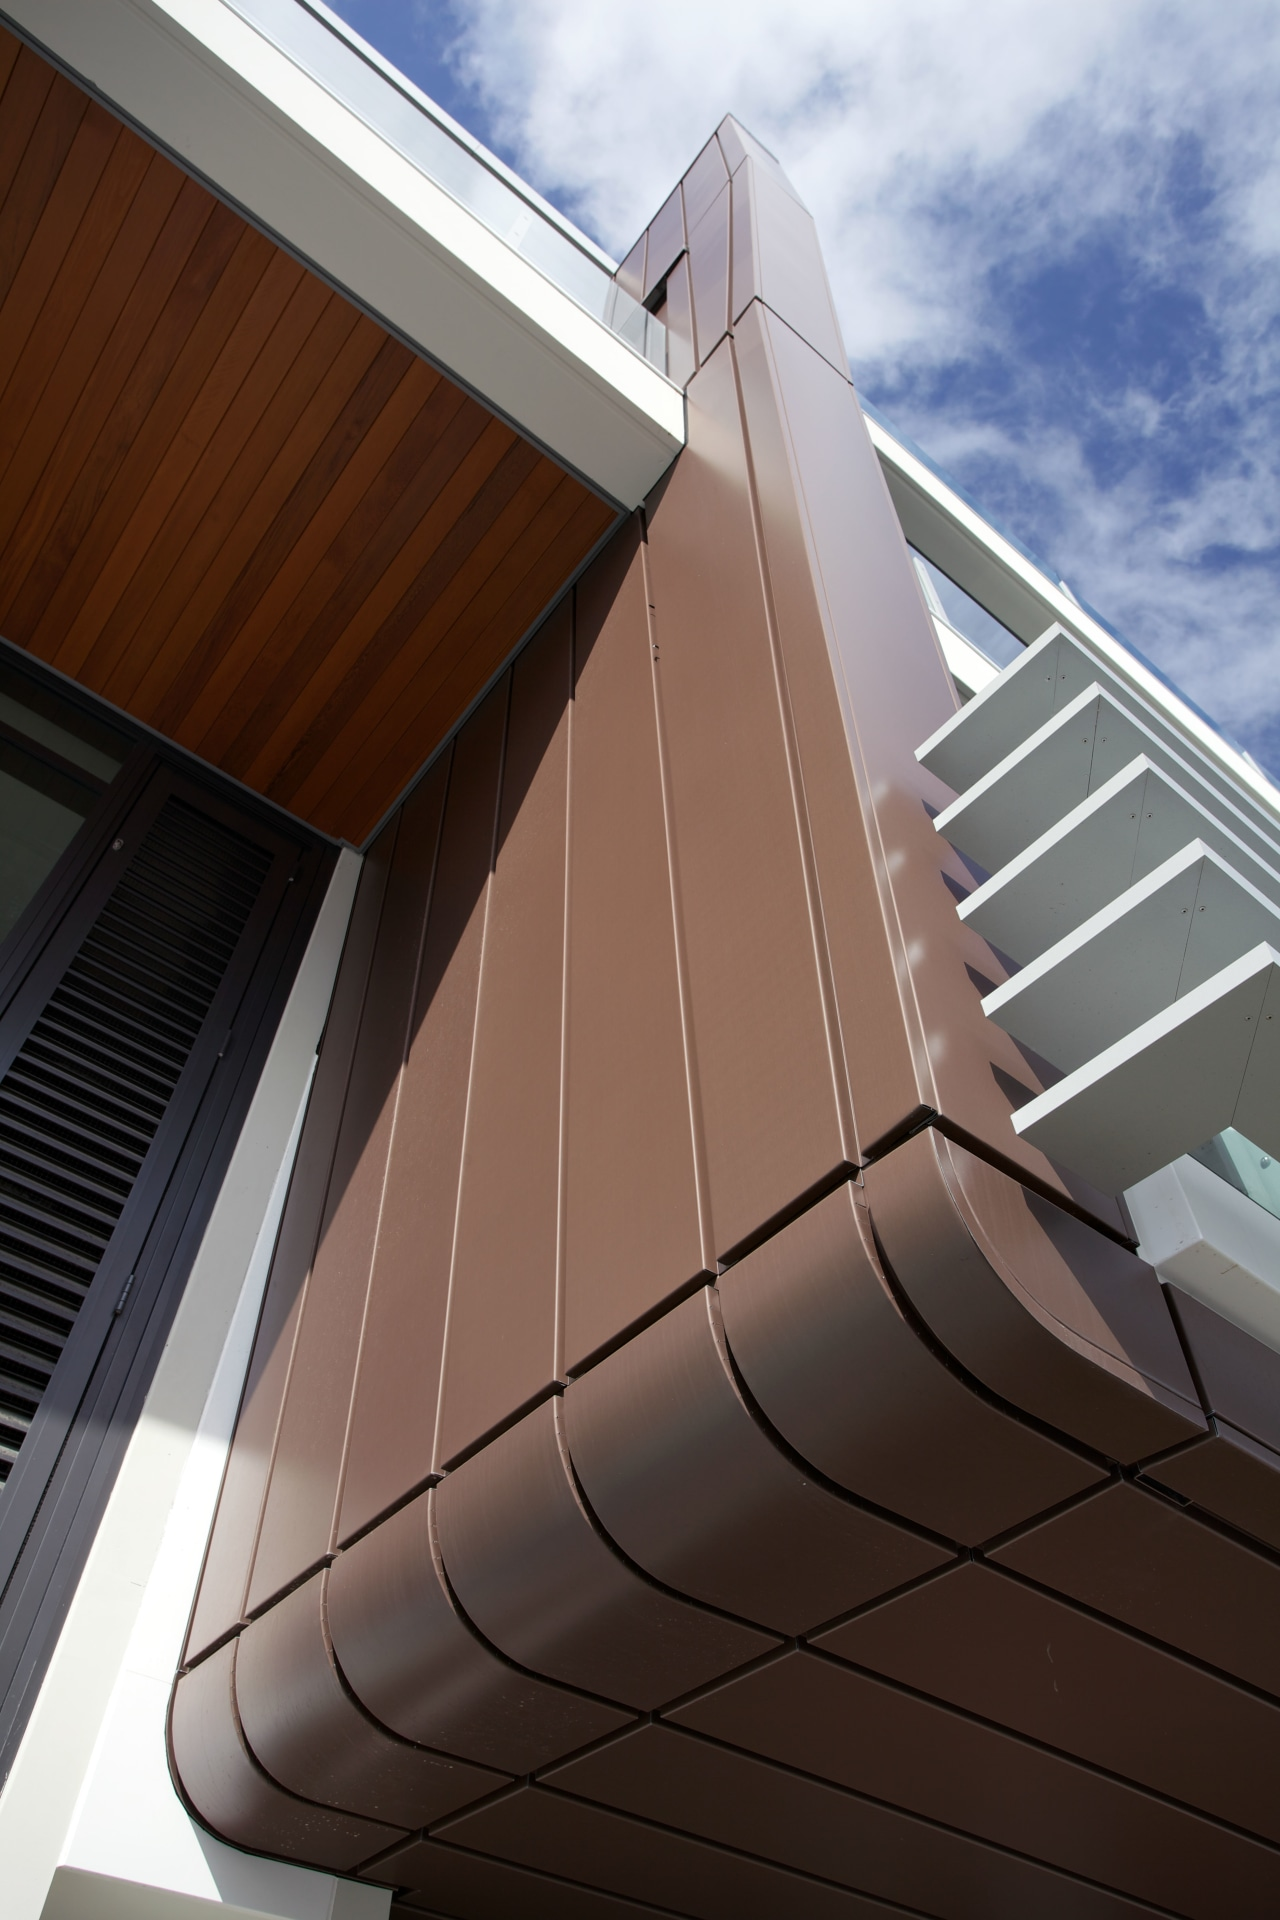 Wakefield Metals, the distributor of VM Zinc cladding angle, architecture, building, daylighting, daytime, facade, house, line, roof, siding, sky, structure, black, gray, brown